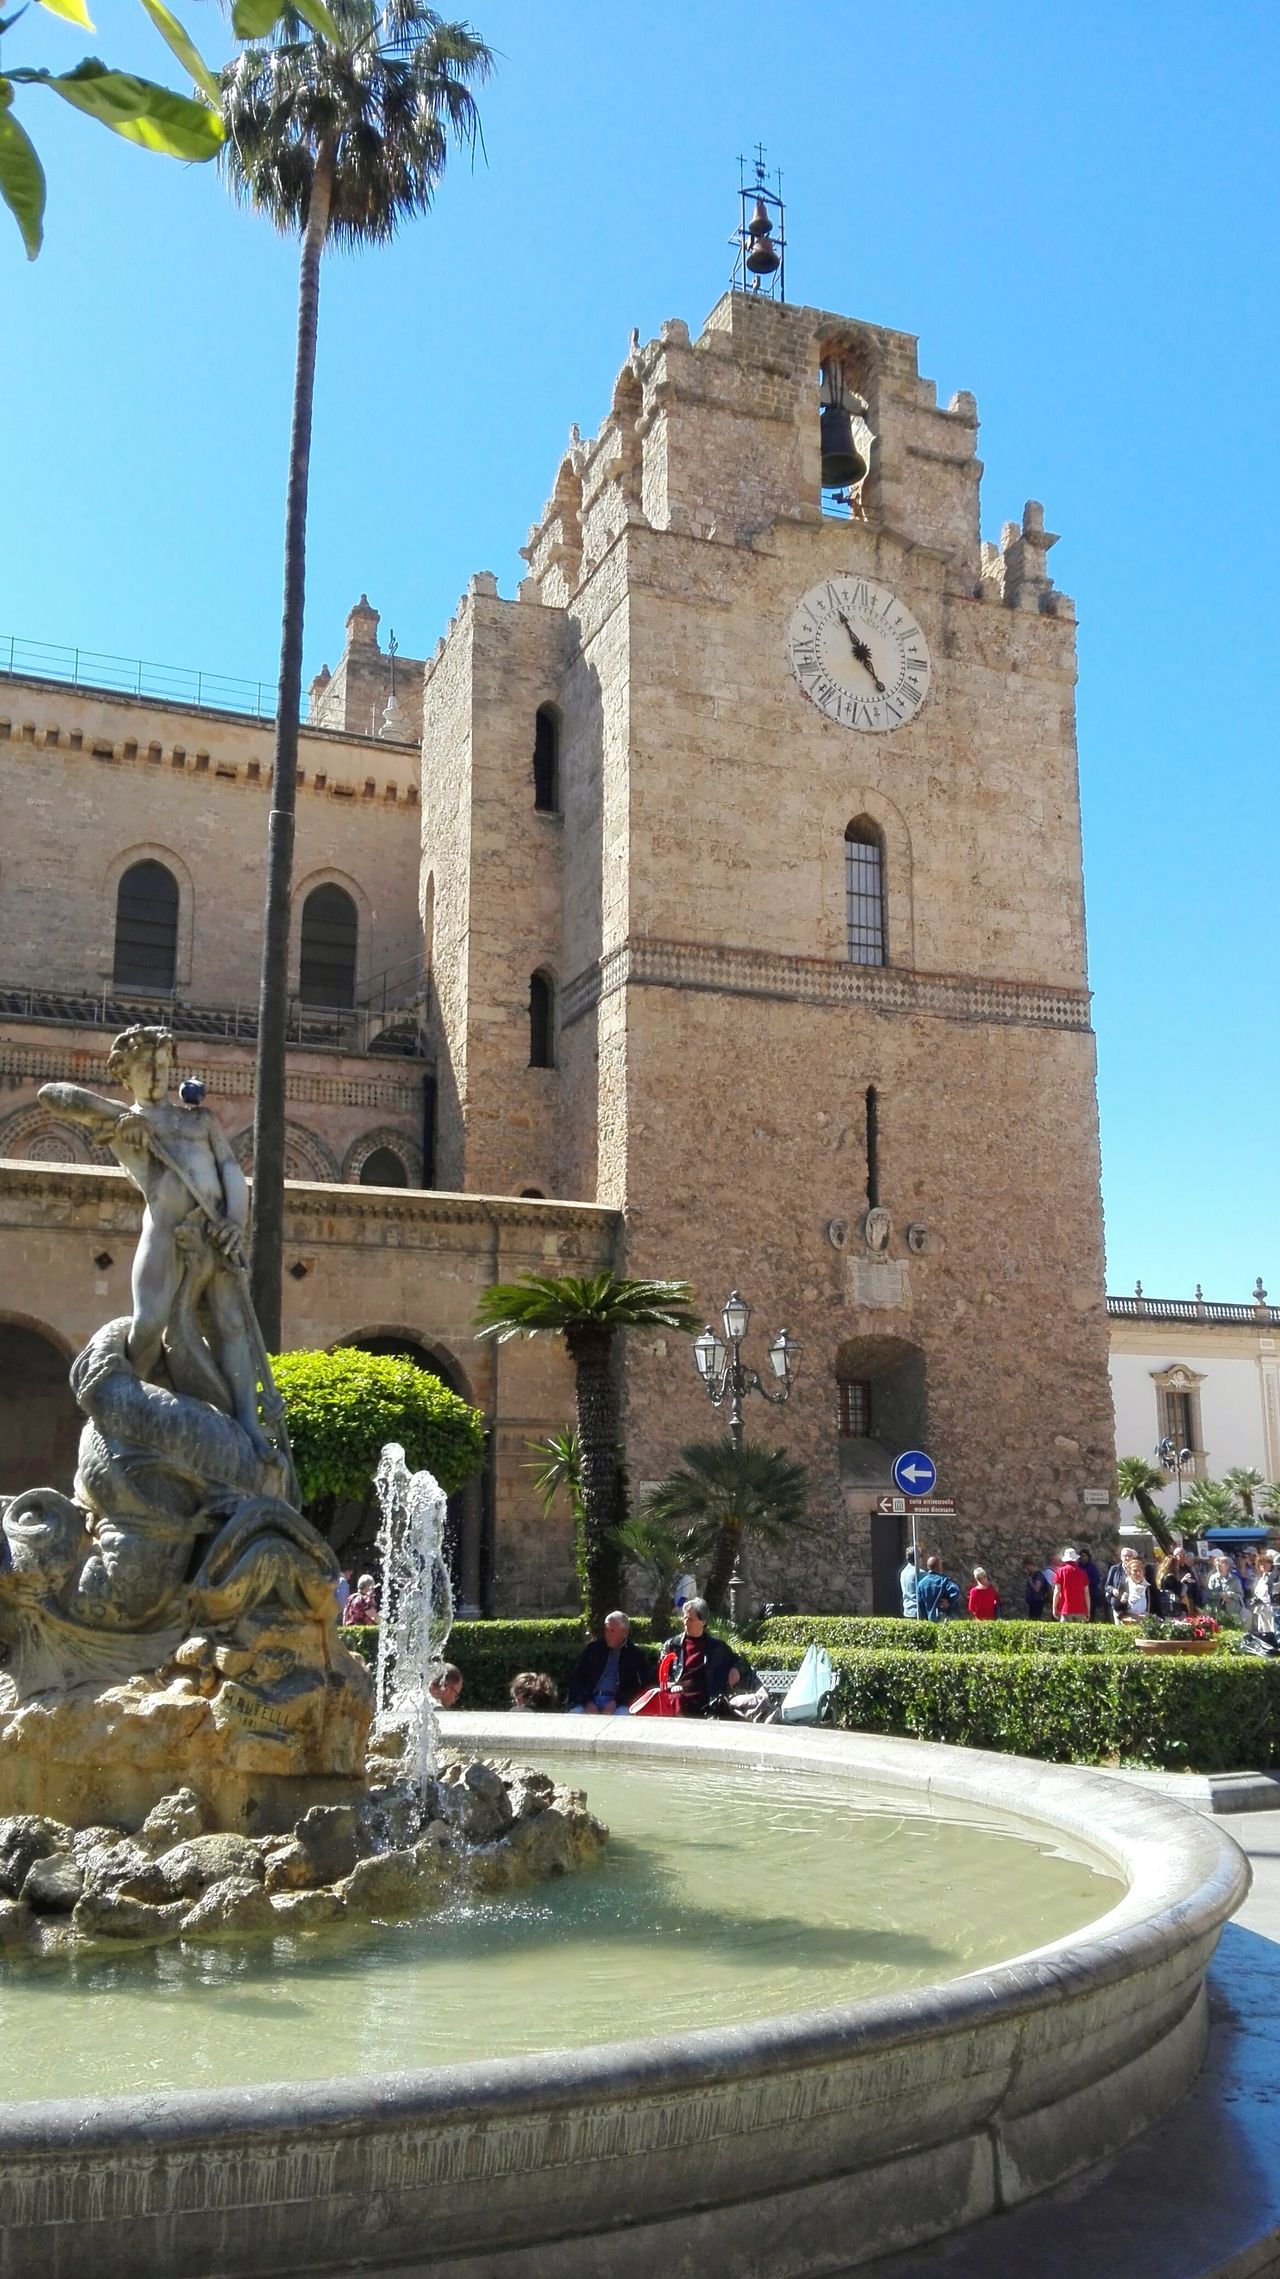 UNESCO World Heritage Site Architecture Fountain Building Exterior Built Structure History Water Statue Day Travel Destinations City No People Outdoors Sculpture Sky Clear Sky Tree Cityscape Clock Clock Face Monreale Cathedral Italy Palermo